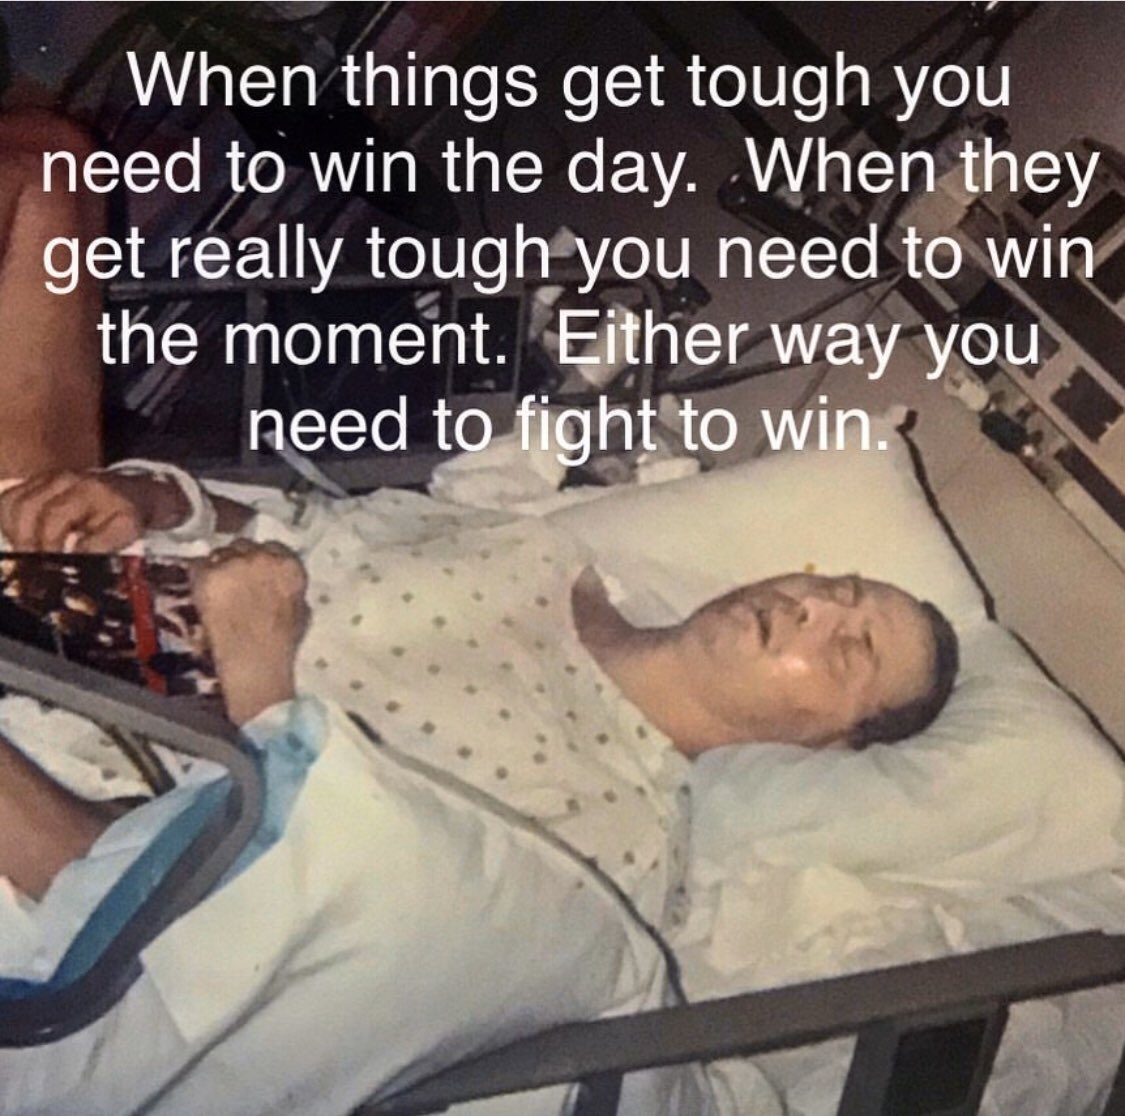 Never Give Up the Fight.  Life is a fight, fight back.  When fighting for your life you need to fight to win every moment, every tick of the clock is a championship round.  Some fights are big and some are small, either way a fight is a fight.  Make it a habit to fight to win! https://t.co/NxCl9Bu8sD